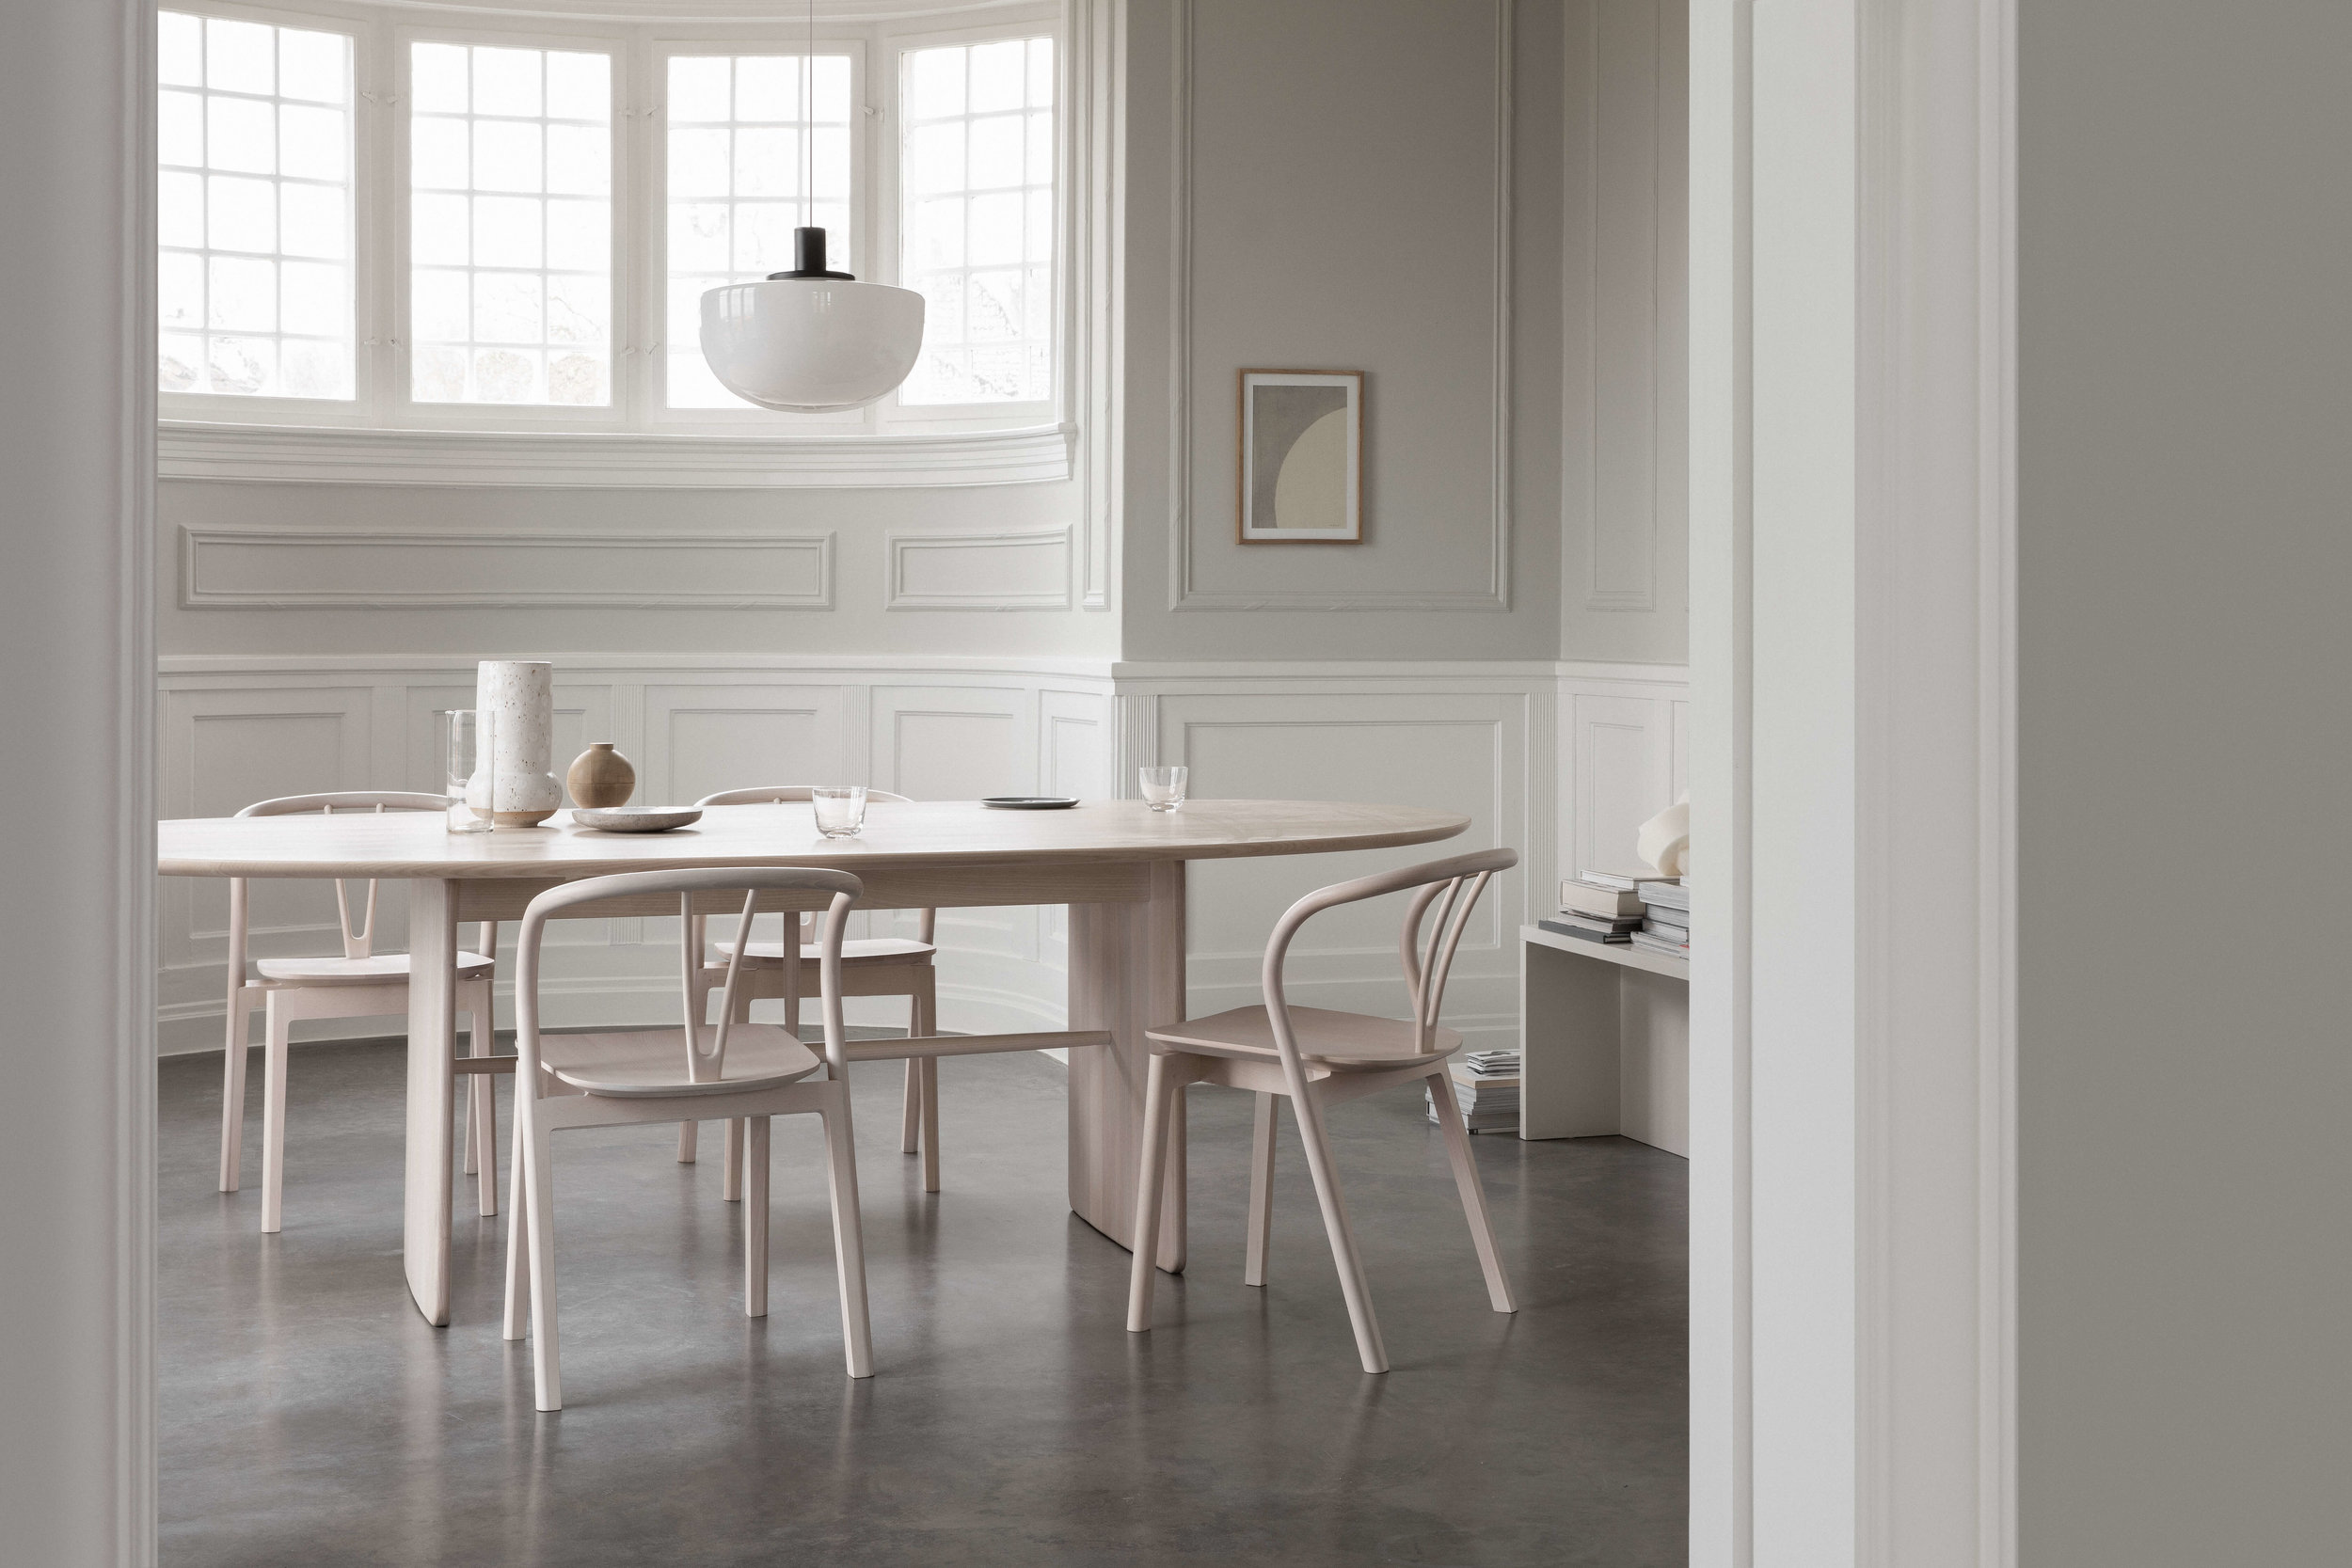 Ercol 'Flow' Dining Chairs by Tomoko Azumi